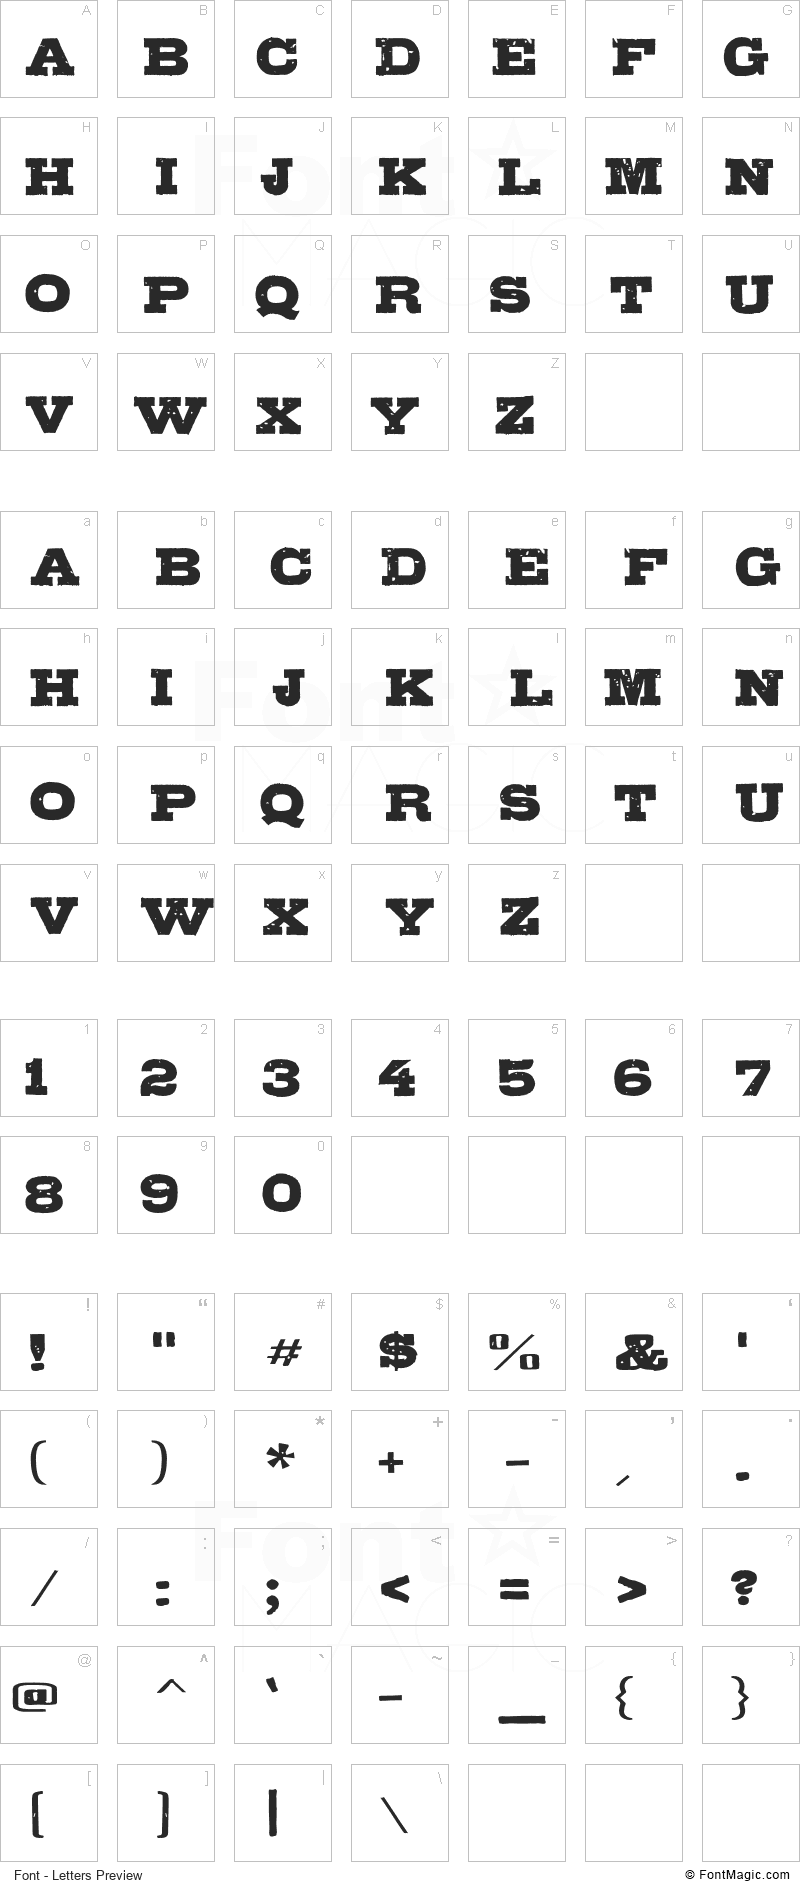 Gipsiero Font - All Latters Preview Chart